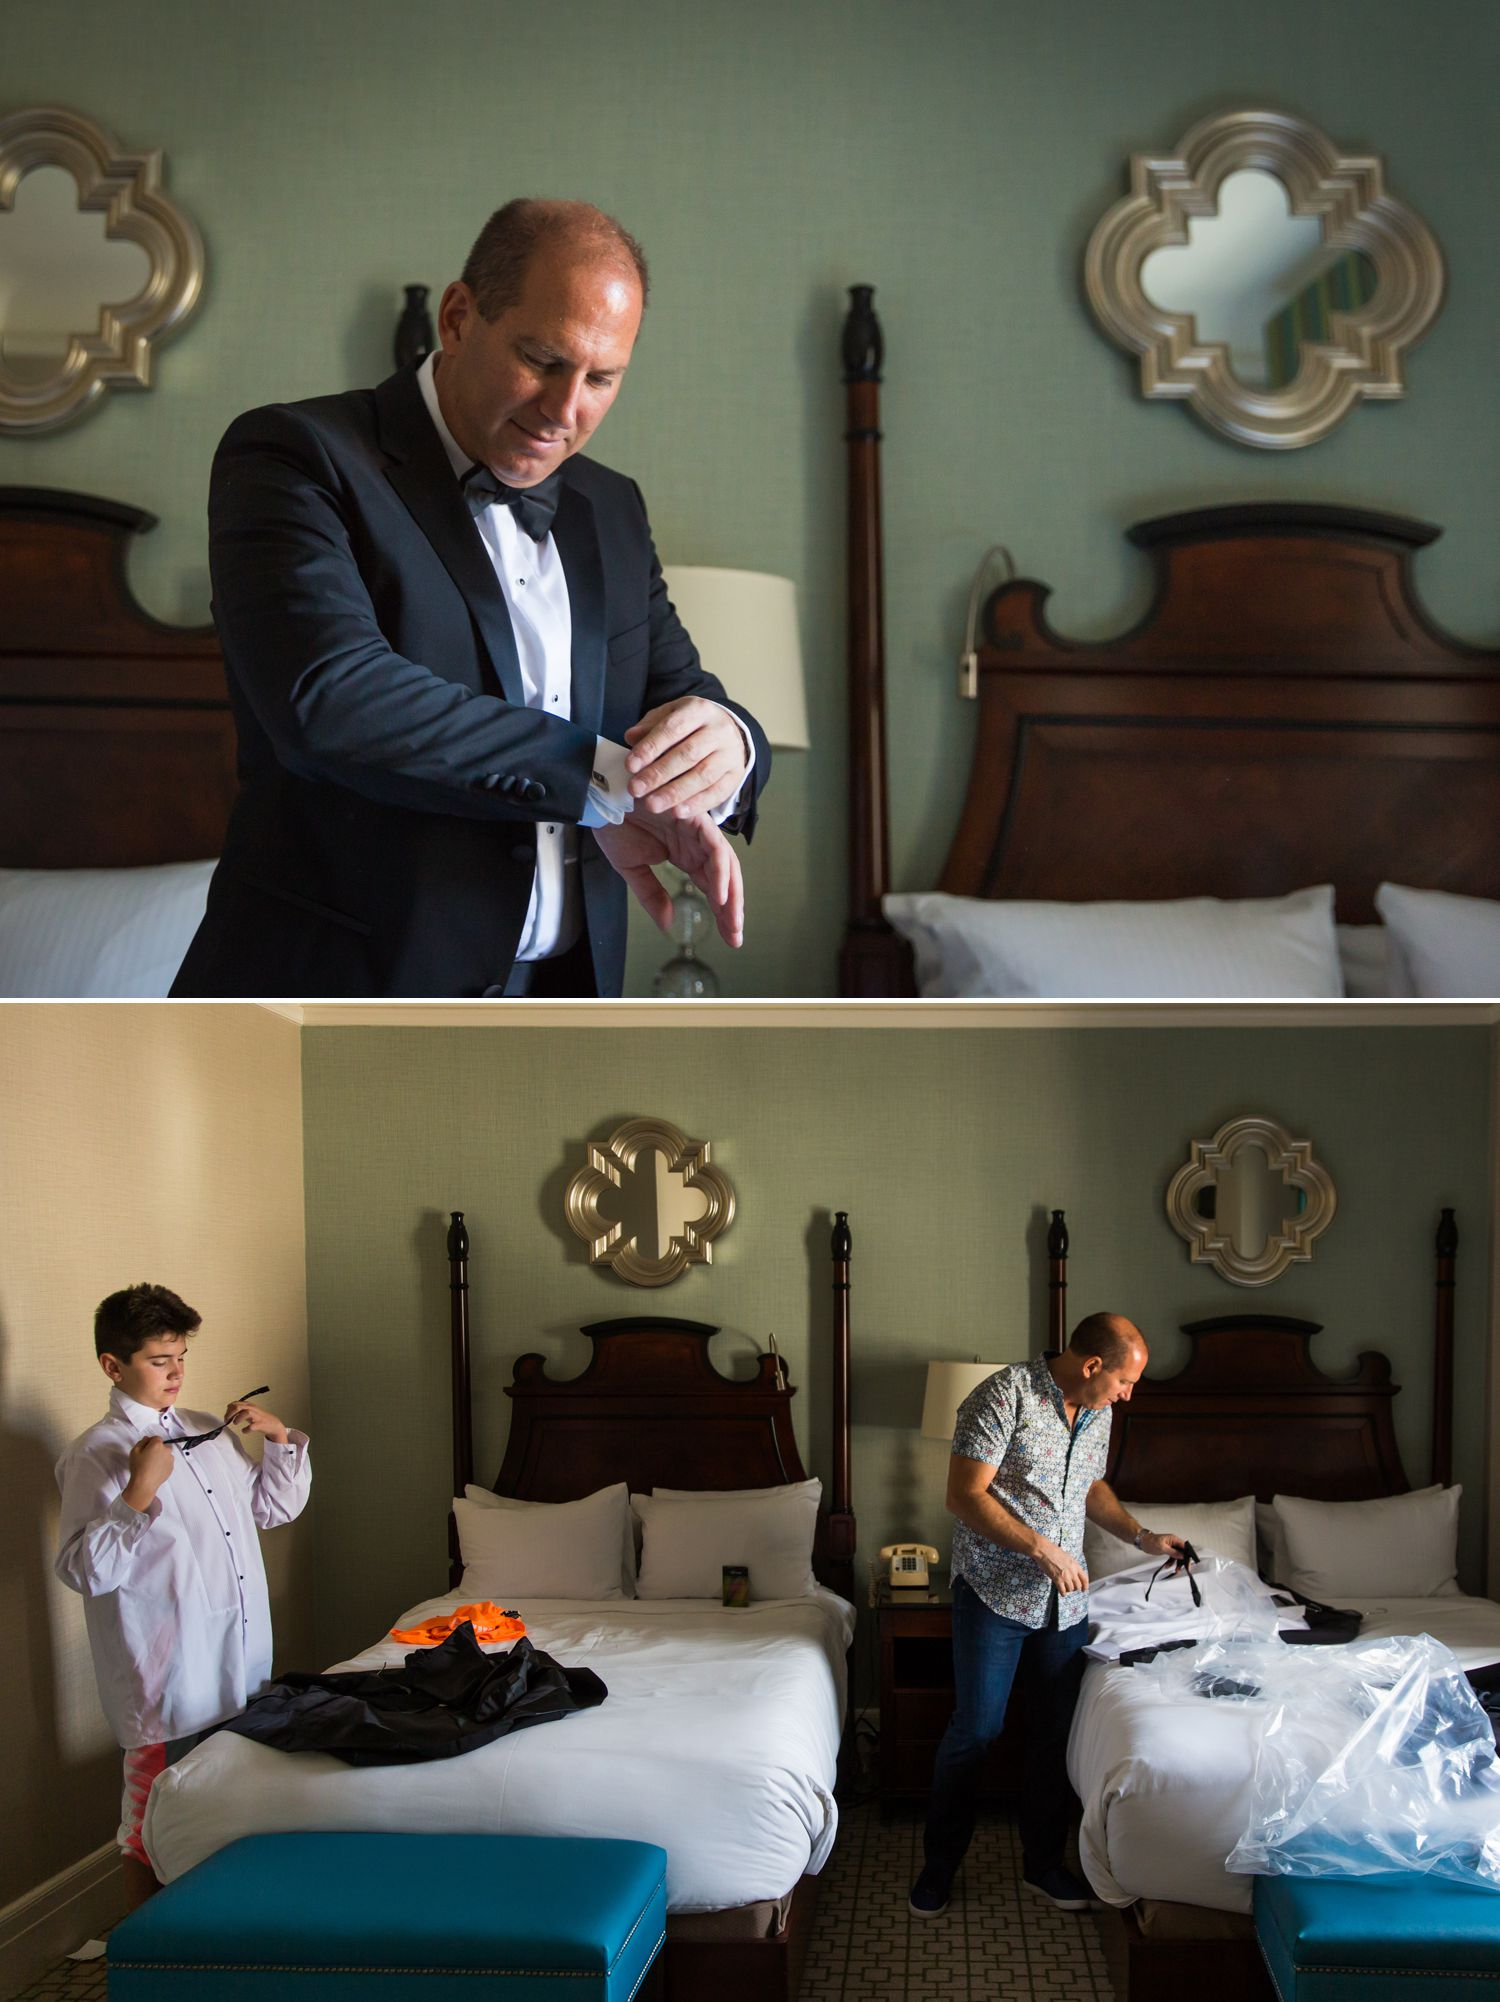 Groom getting ready for his wedding at le chateau laurier in ottawa